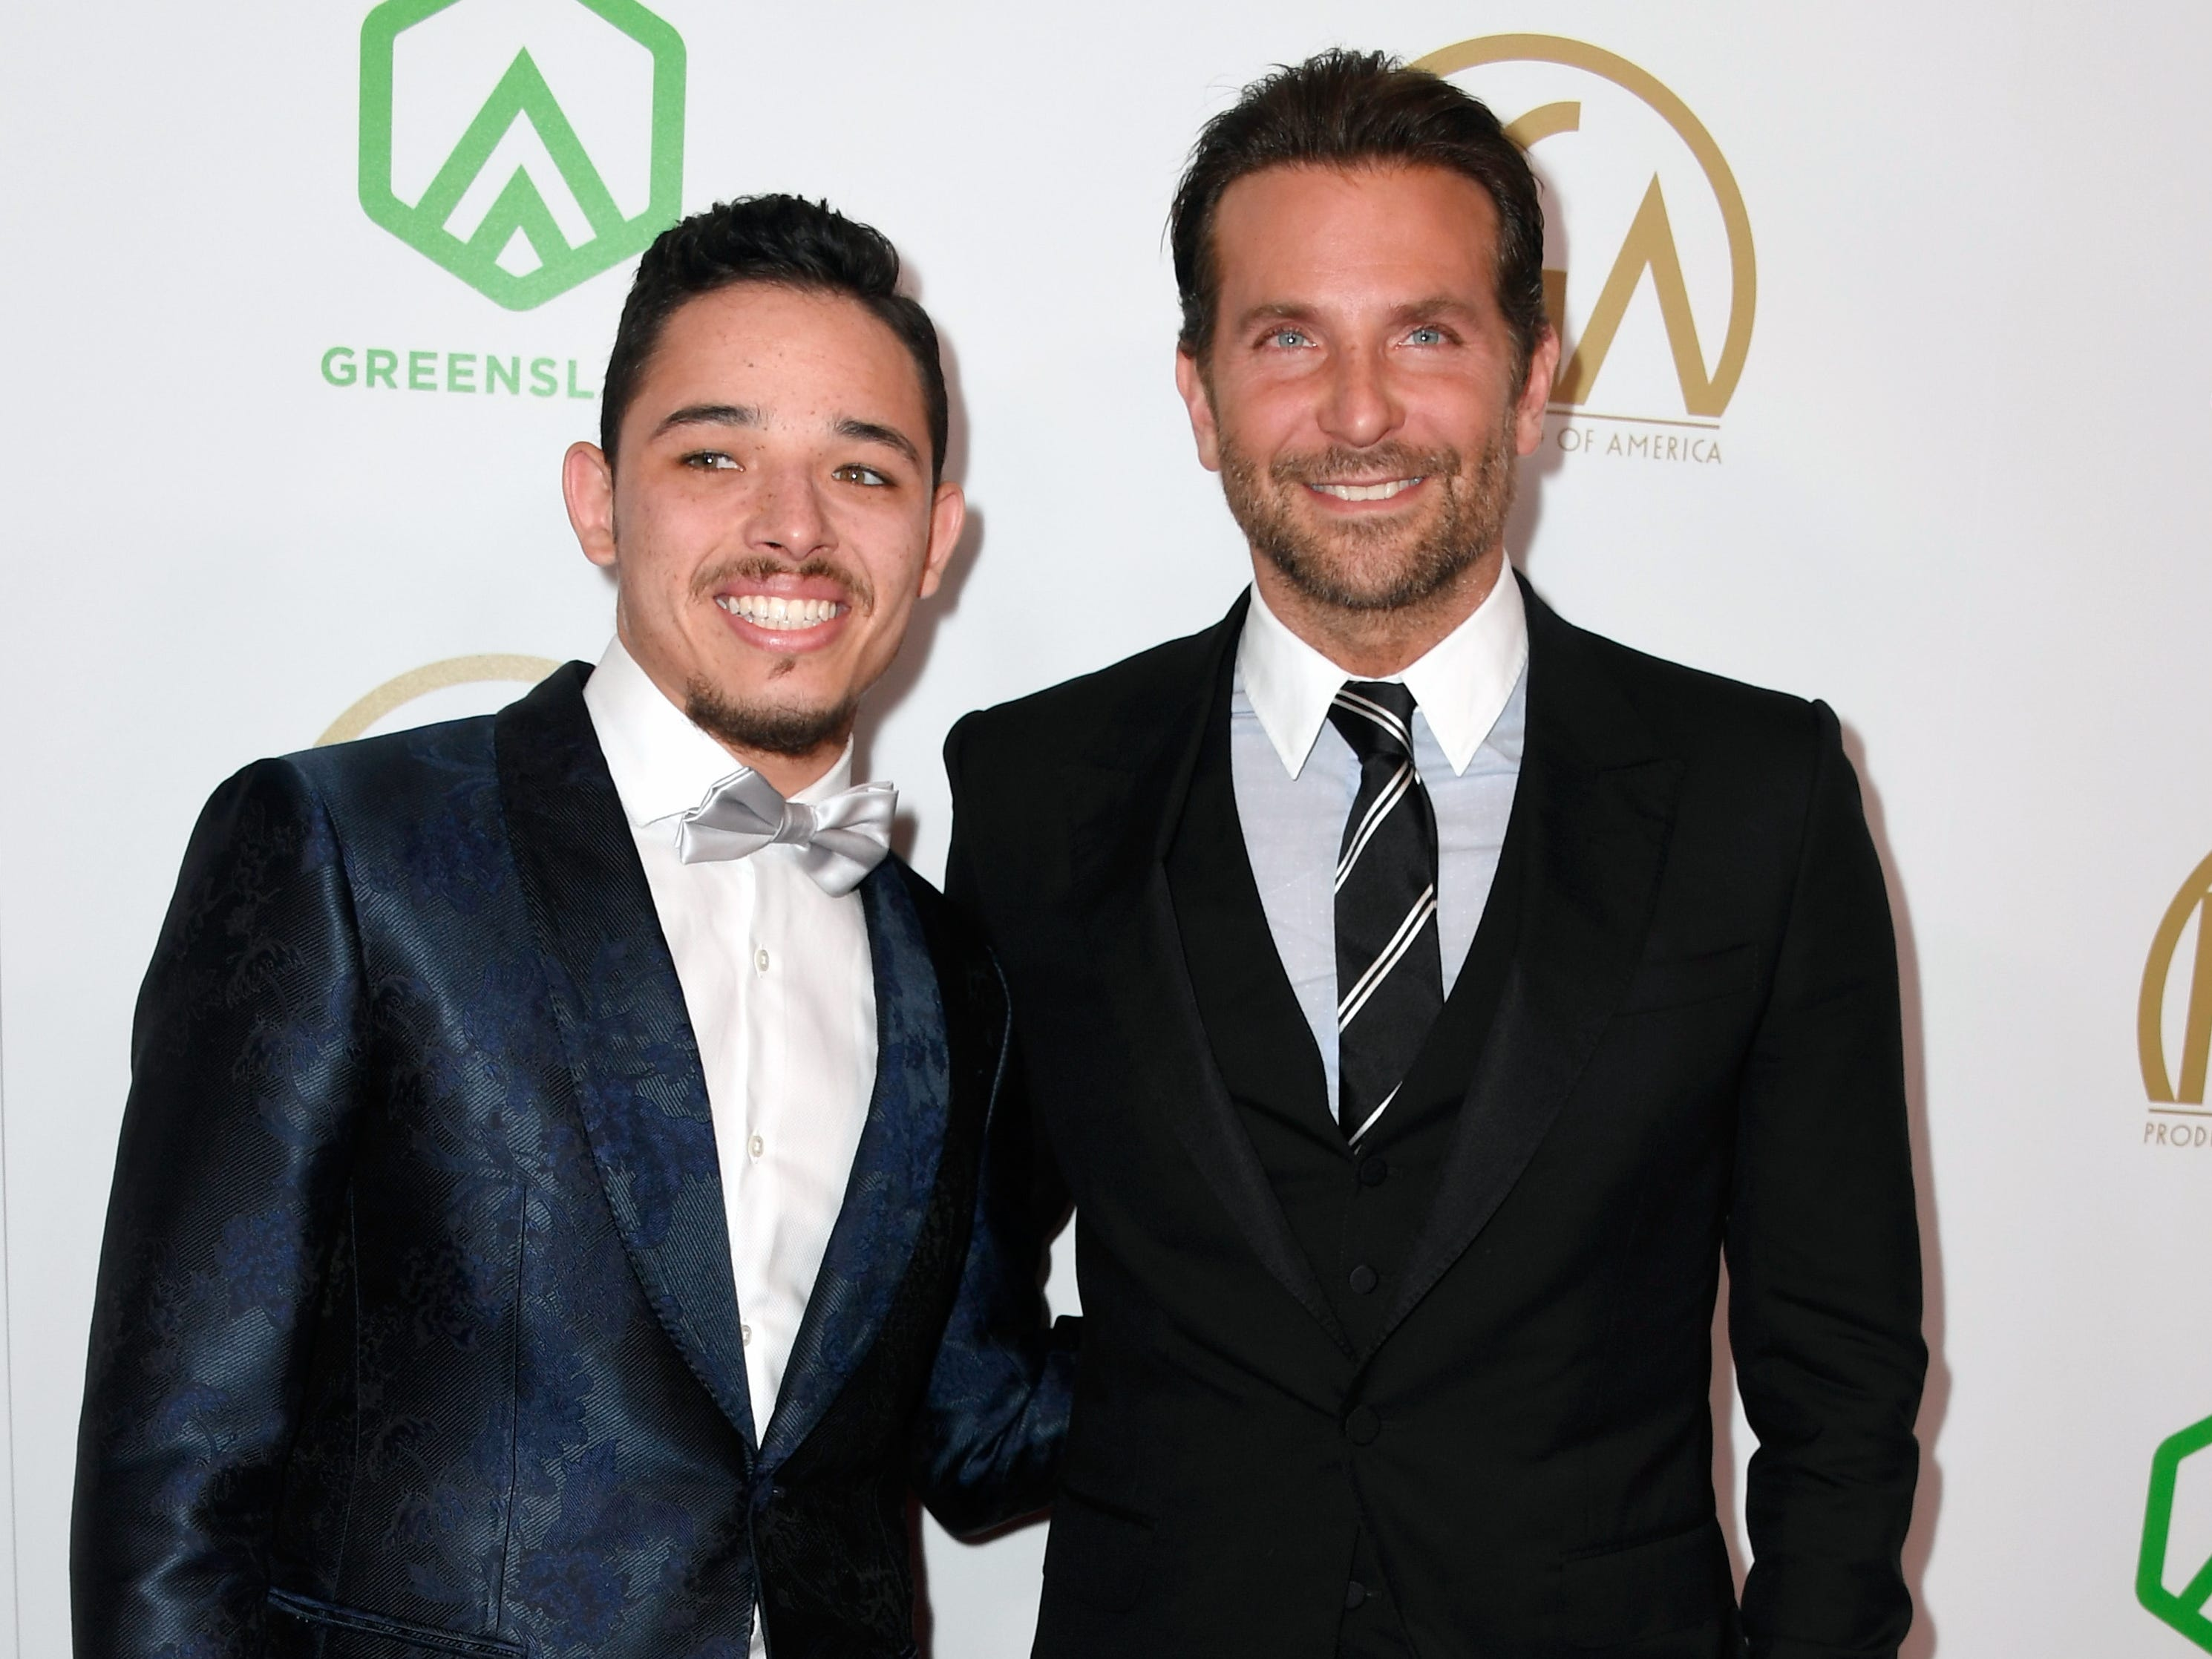 BEVERLY HILLS, CA - JANUARY 19:  Anthony Ramos (L) and Bradley Cooper attend the 30th annual Producers Guild Awards at The Beverly Hilton Hotel on January 19, 2019 in Beverly Hills, California.  (Photo by Frazer Harrison/Getty Images) ORG XMIT: 775277375 ORIG FILE ID: 1085411192